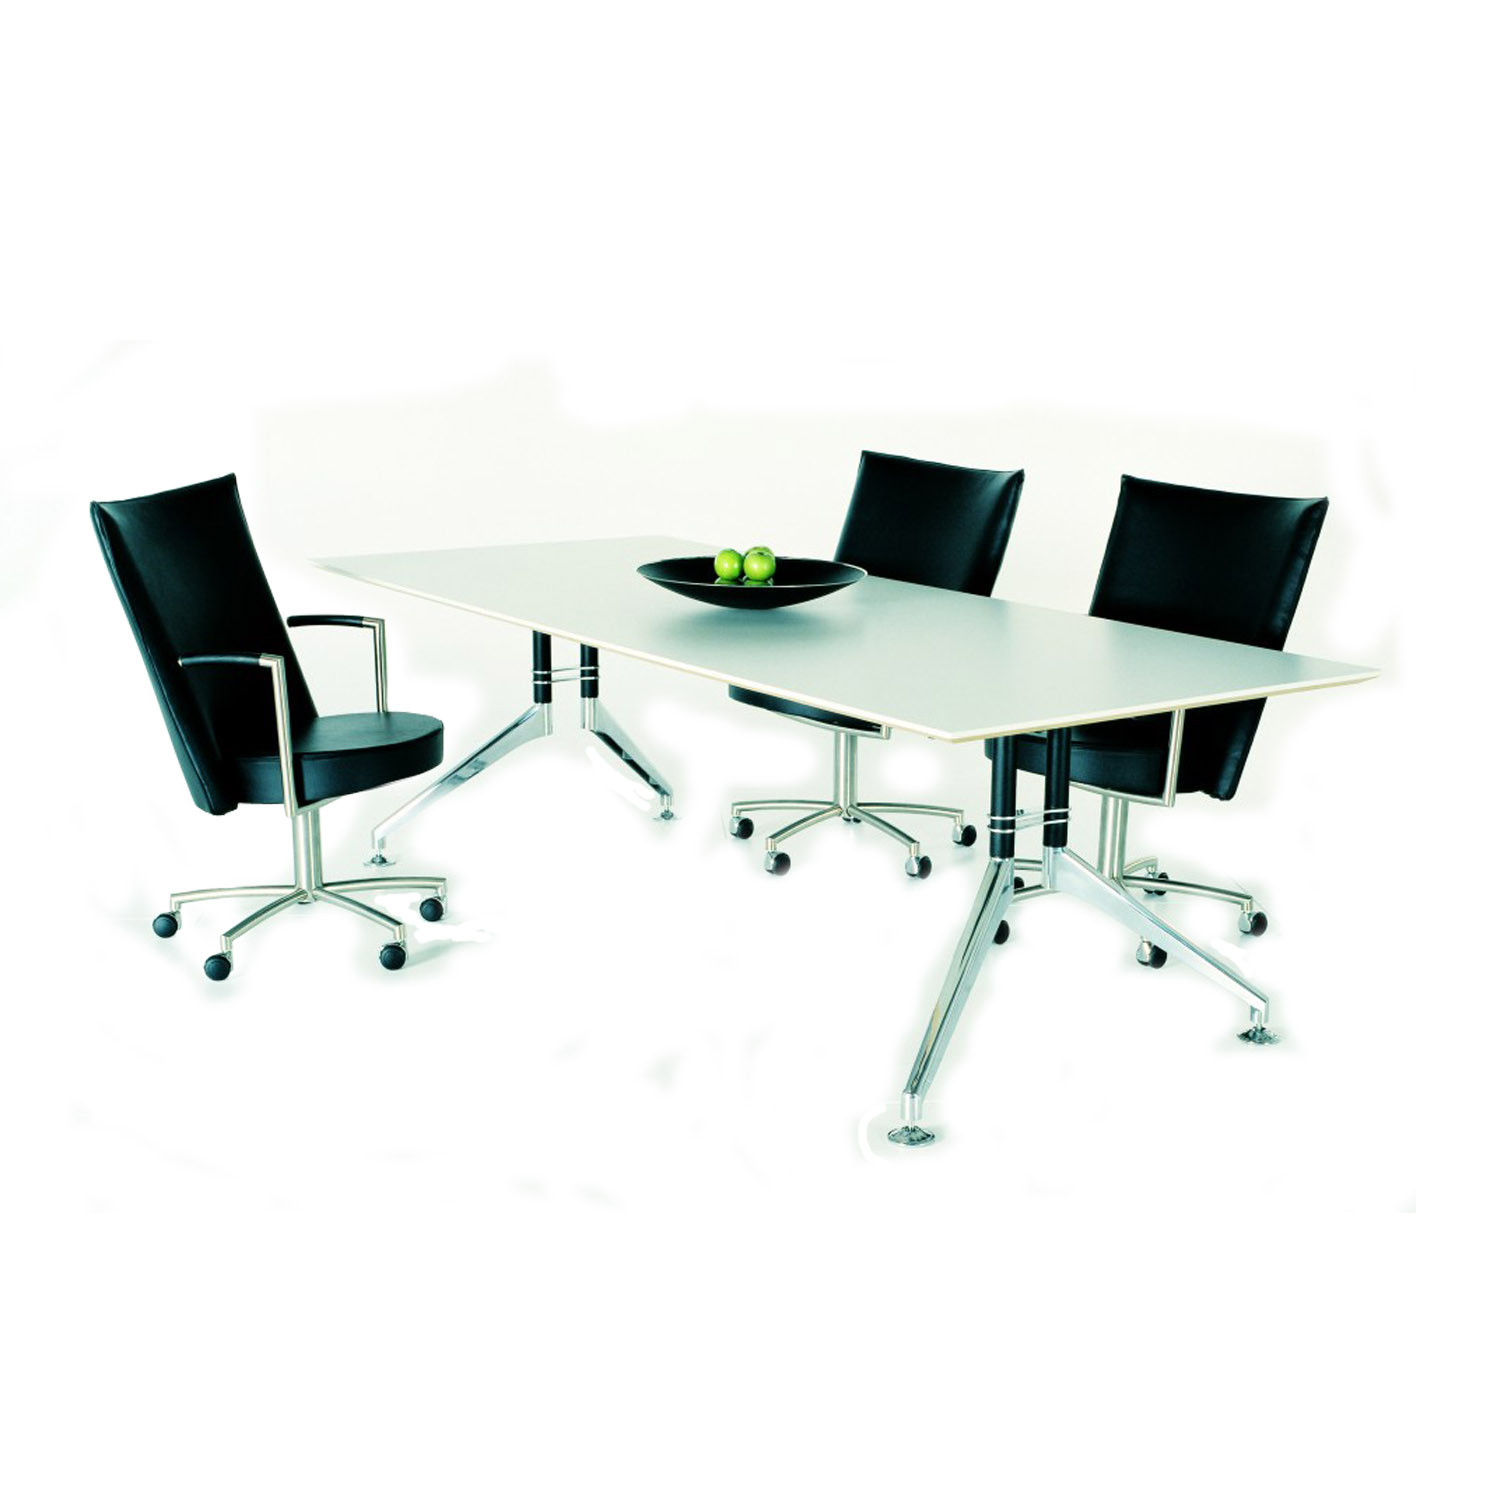 Figure Adjustable Tables